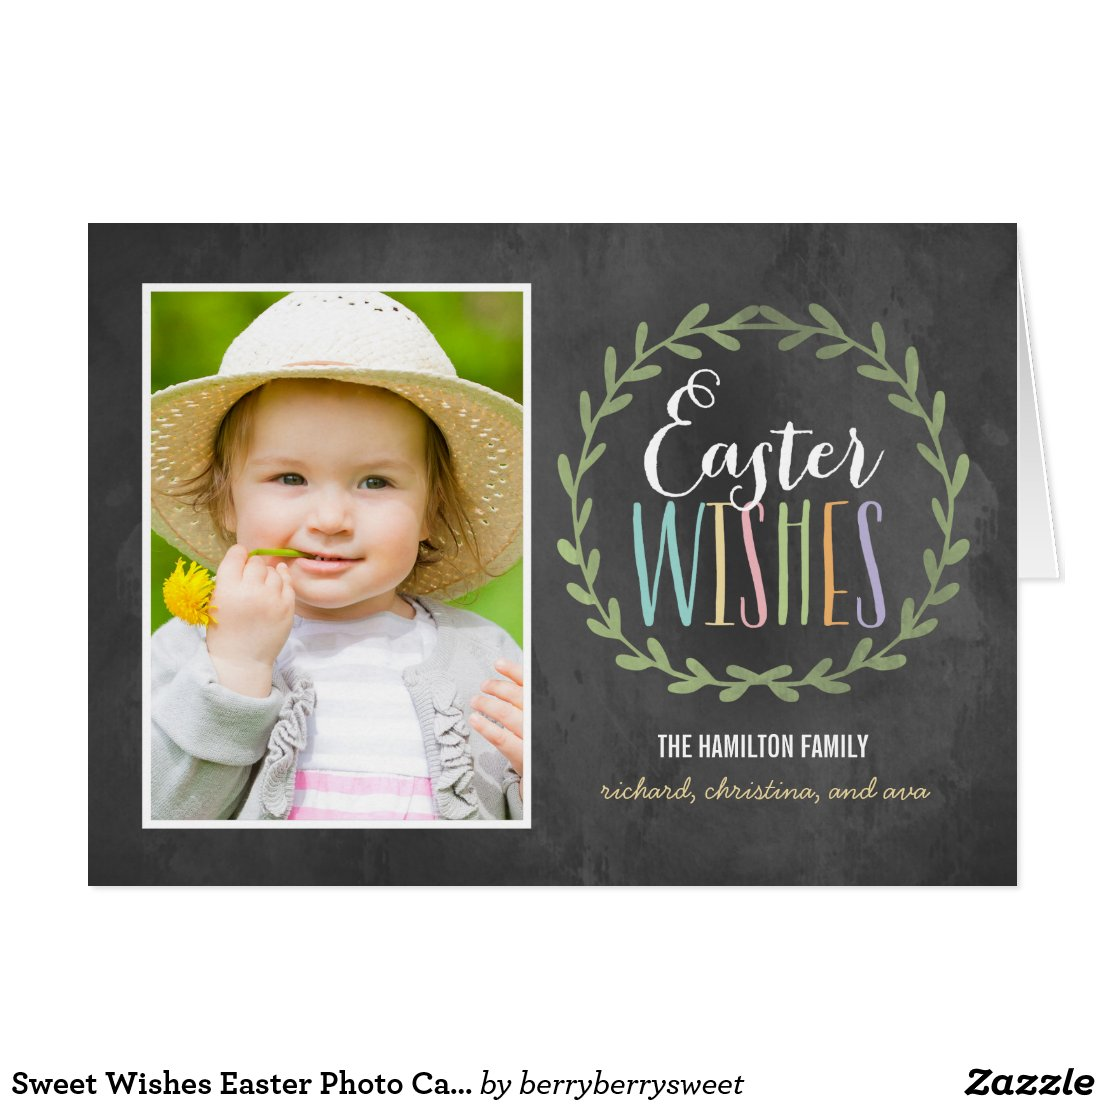 Sweet Wishes Easter Photo Card